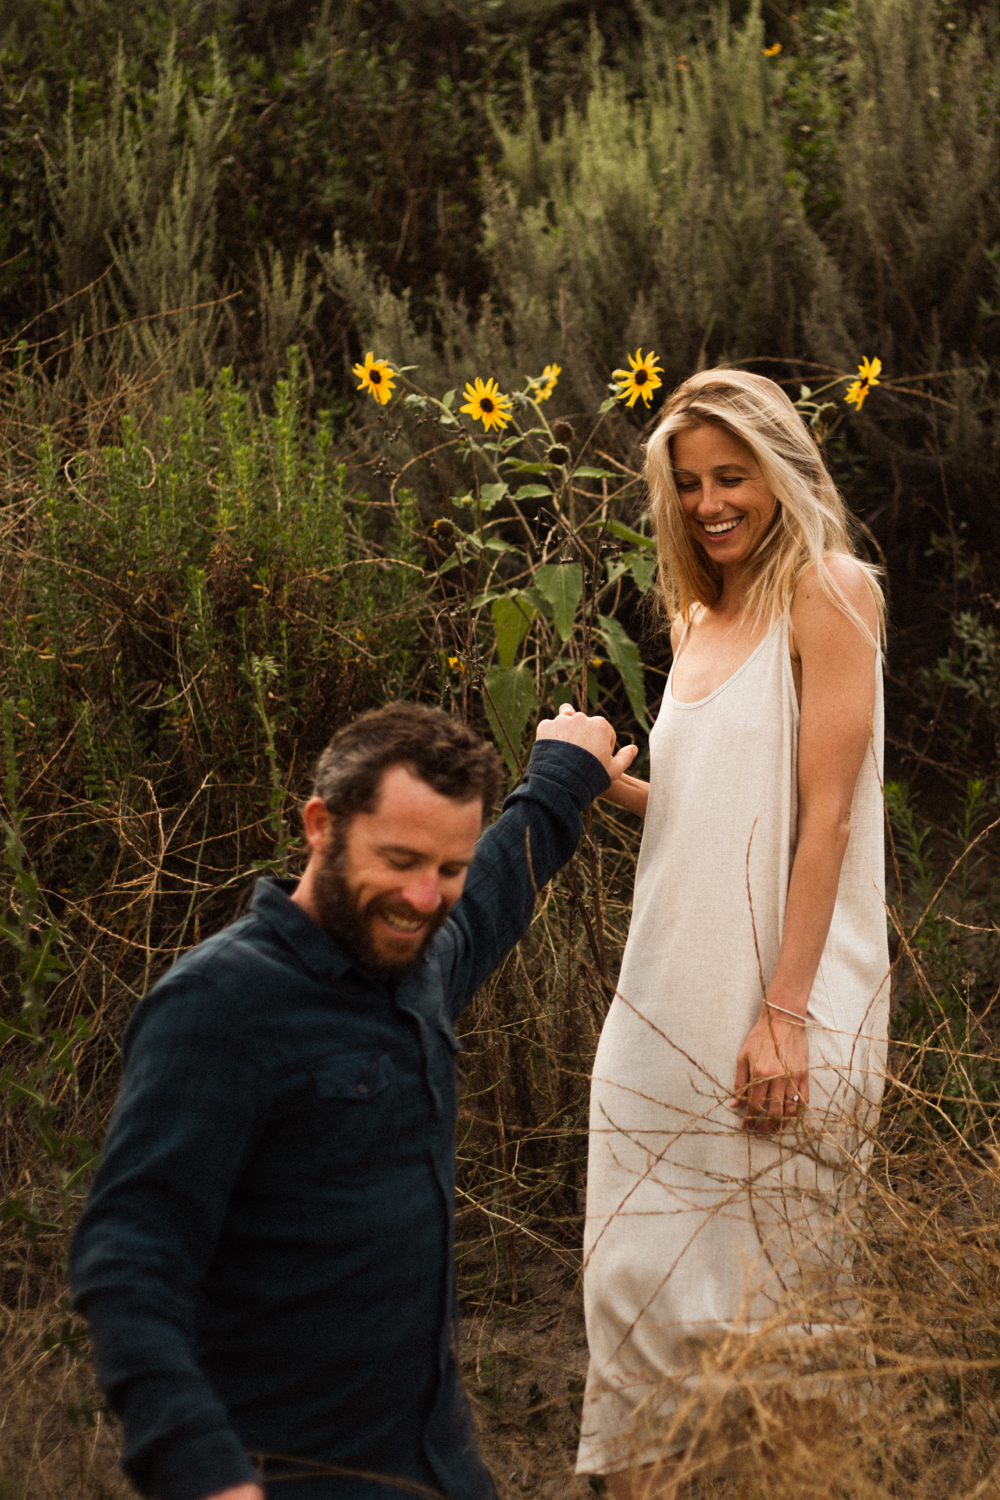 Engagement session shoot photos photography Orange County photographer nature film Talega Home session California44.jpg